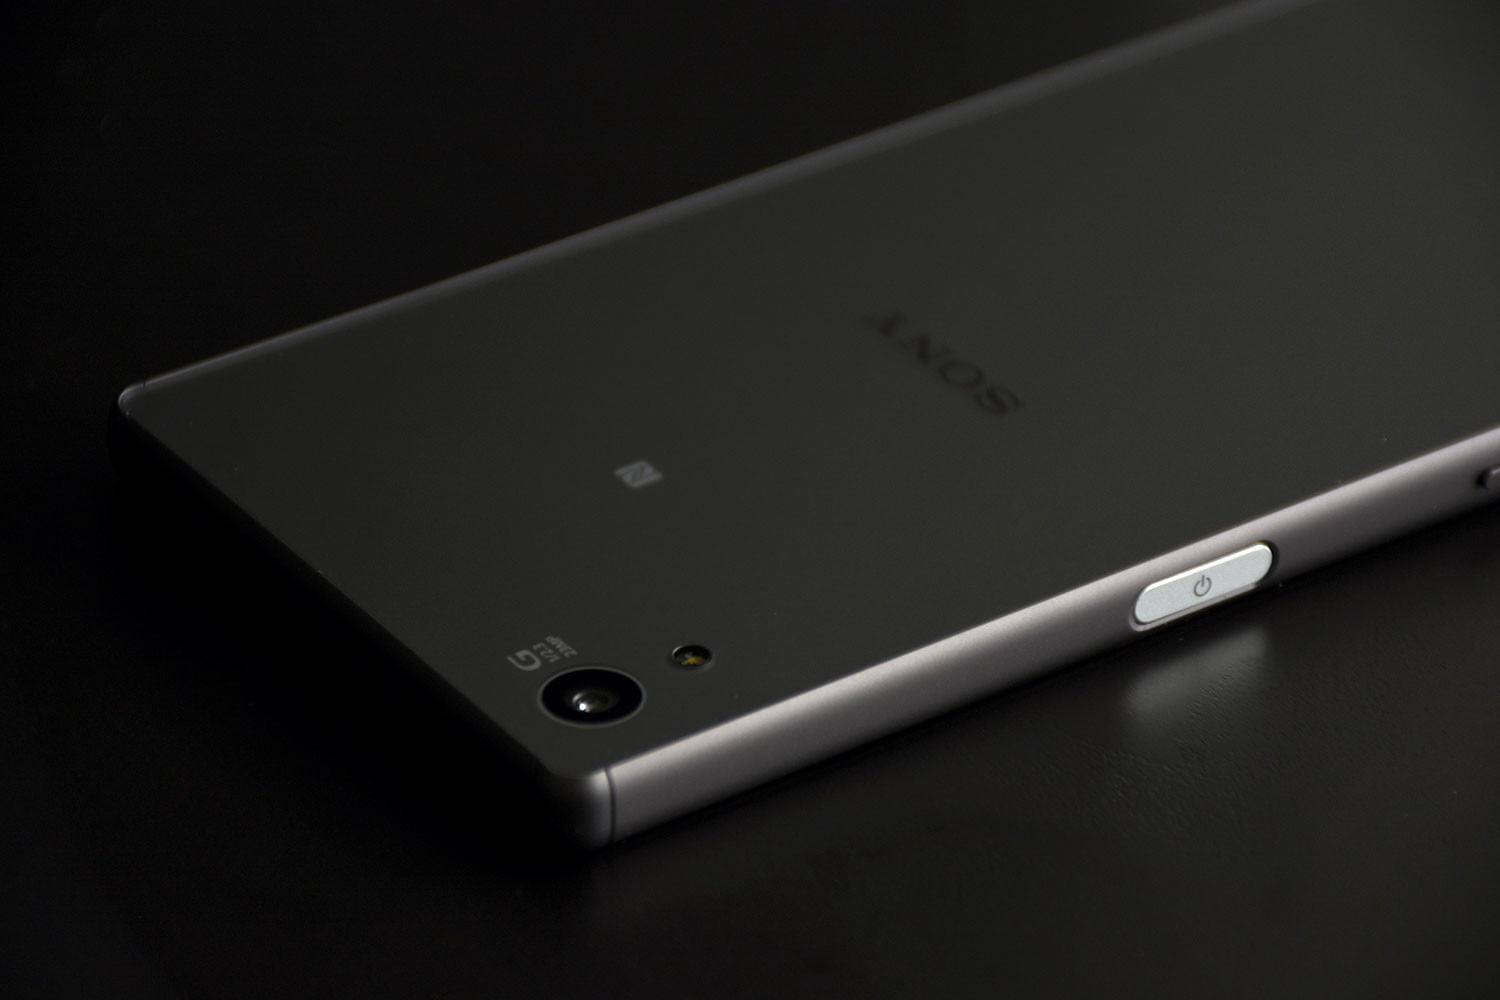 sony xperia z5 camera. the front cameras are different. x performance comes with a 13-megapxiel snapper offering an aperture of f/2.0 and sensitivity up to iso 6400. sony xperia z5 camera